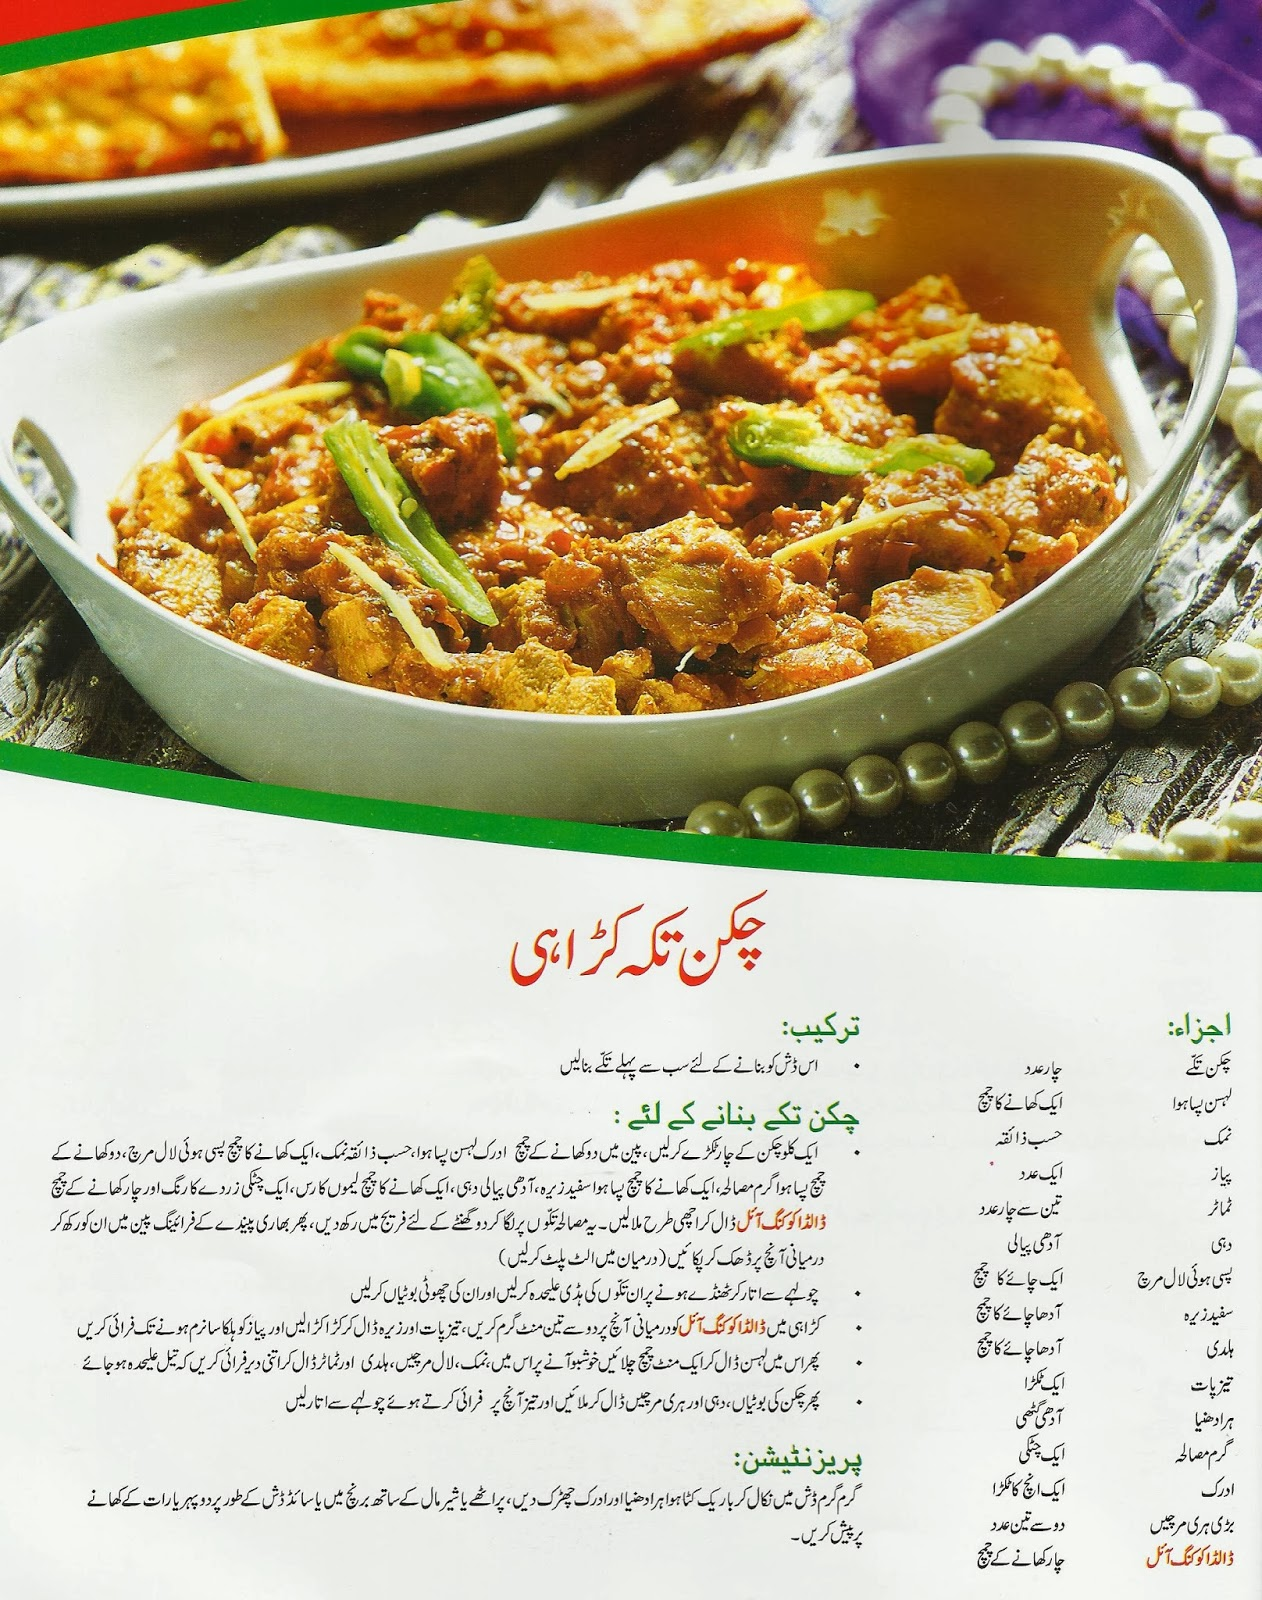 Coking Philospher A New Dish Of Pakistan And Irani Afghani Indian Daily Cooked Rotini Sweet And